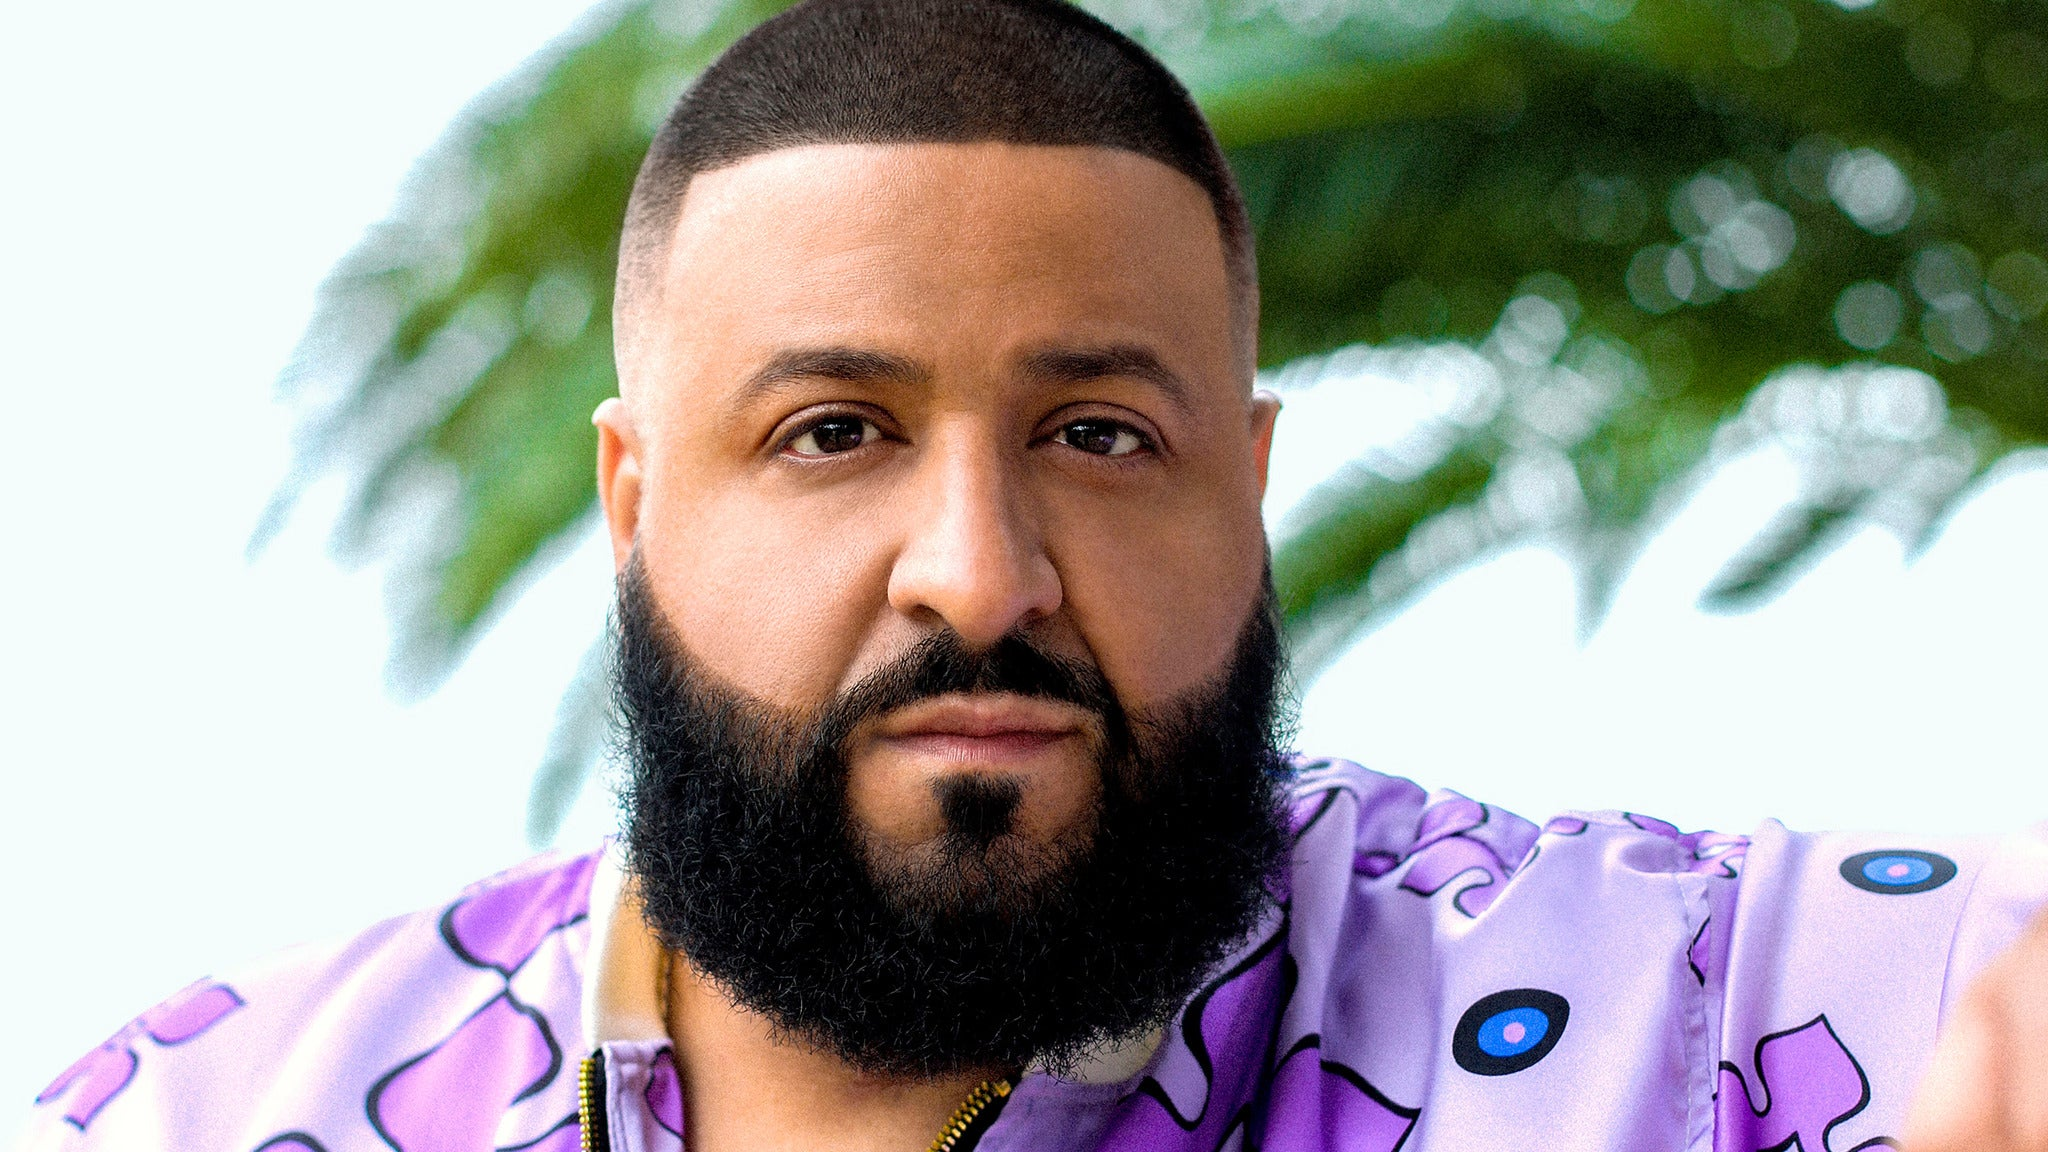 IMPACT '17 Ft. DJ Khaled at Watsco Center